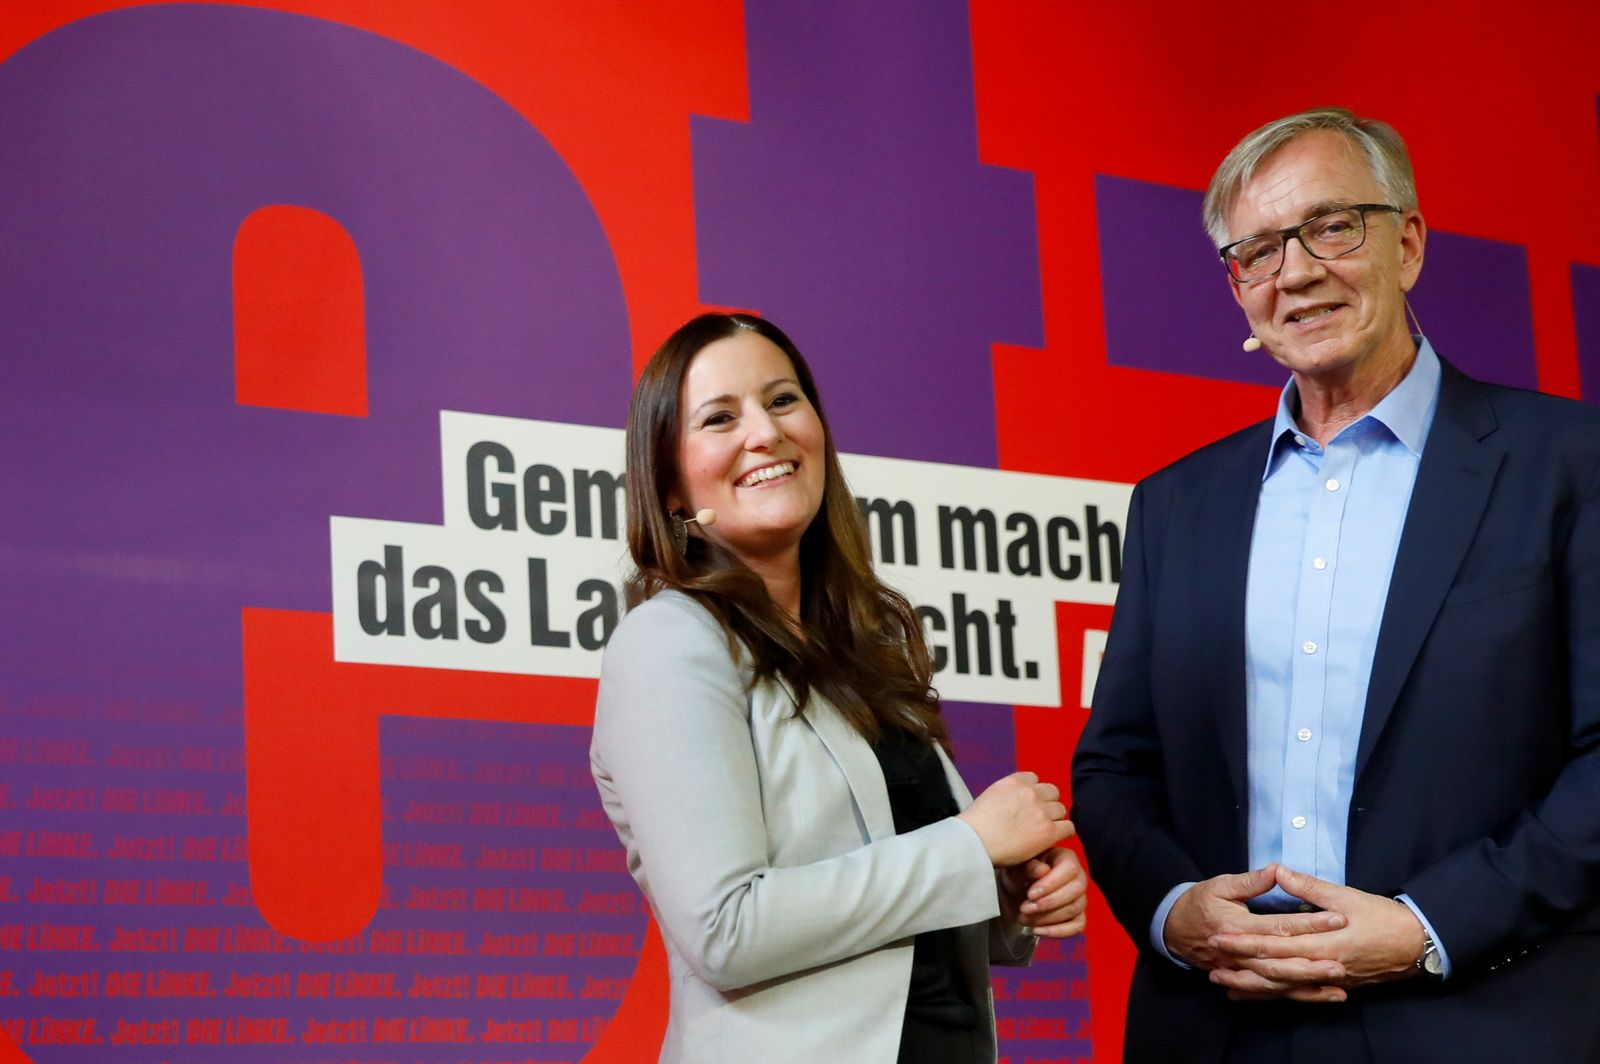 Germany's left wing Die Linke party present their top candidates for federal elections, in Berlin